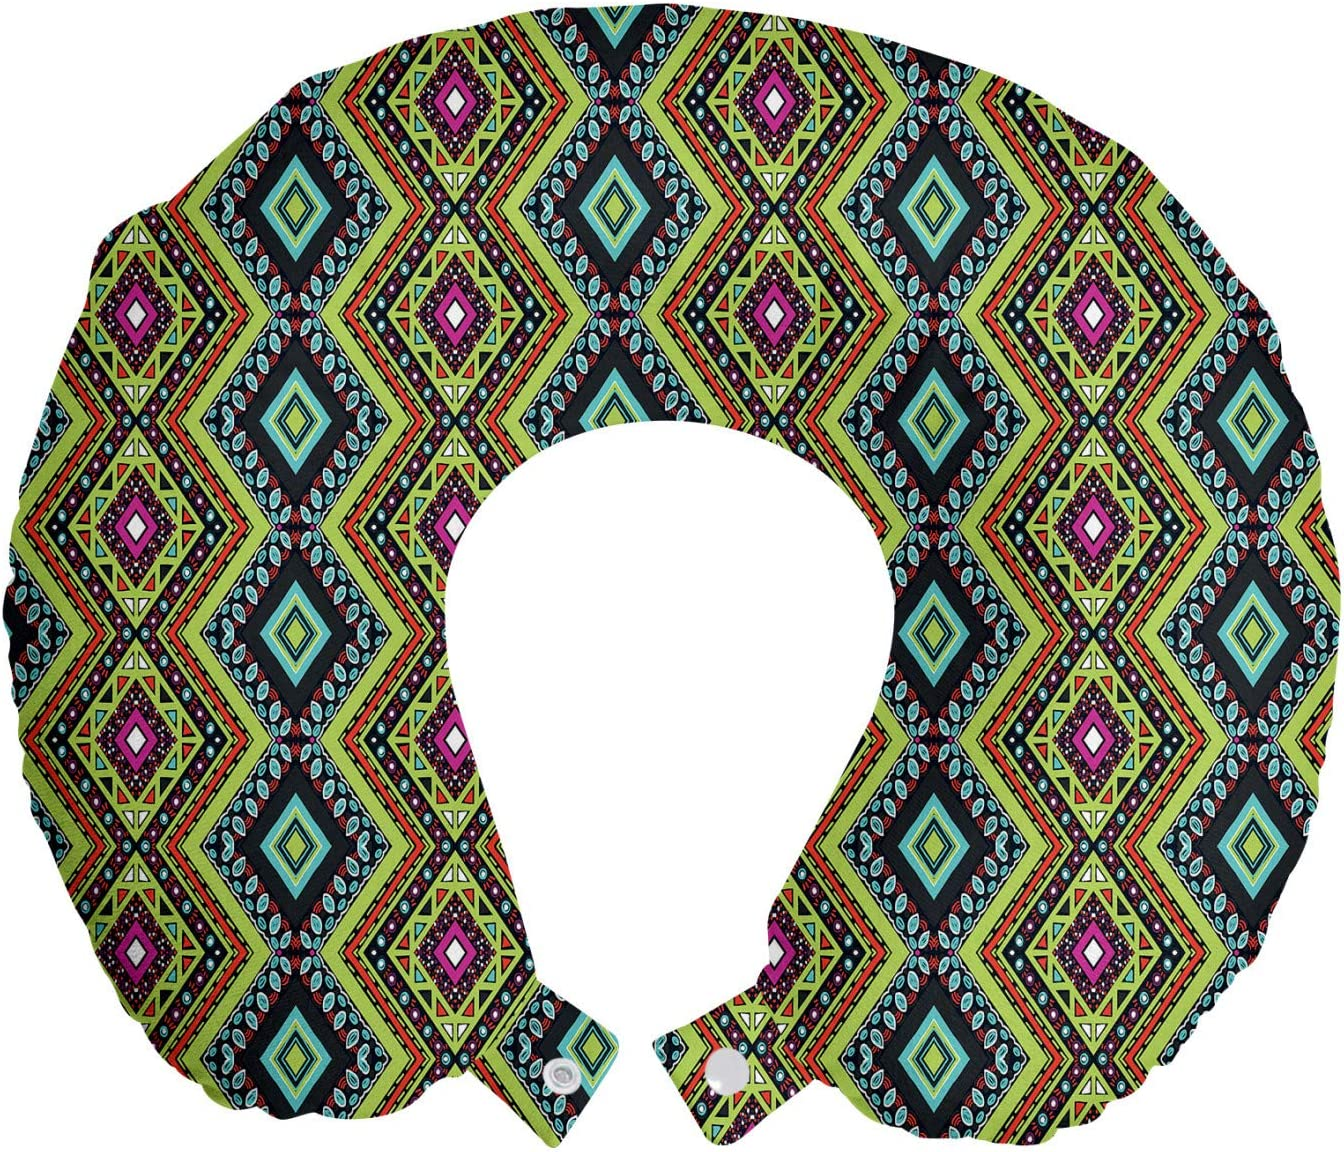 70% OFF 1 year warranty Outlet Ambesonne Ethnic Travel Pillow Neck Rest Folklore Geometric Orn